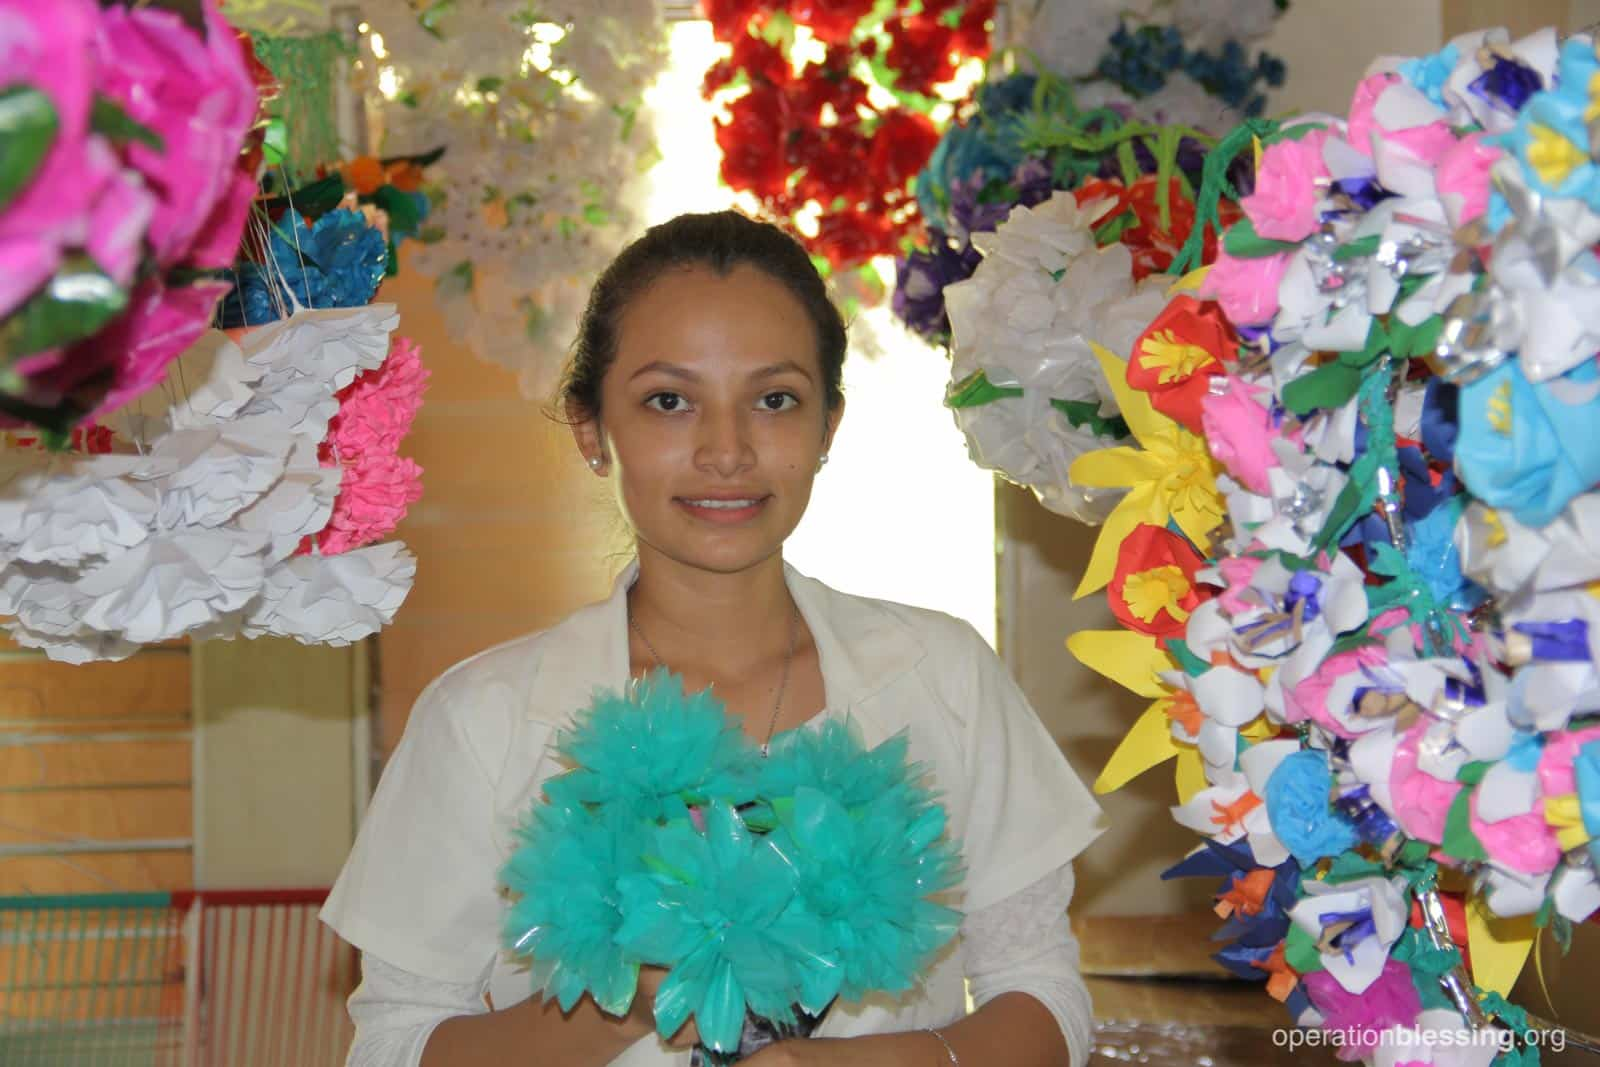 Maria stands surrounded by beautiful paper flowers, which she now sells as a successful business.